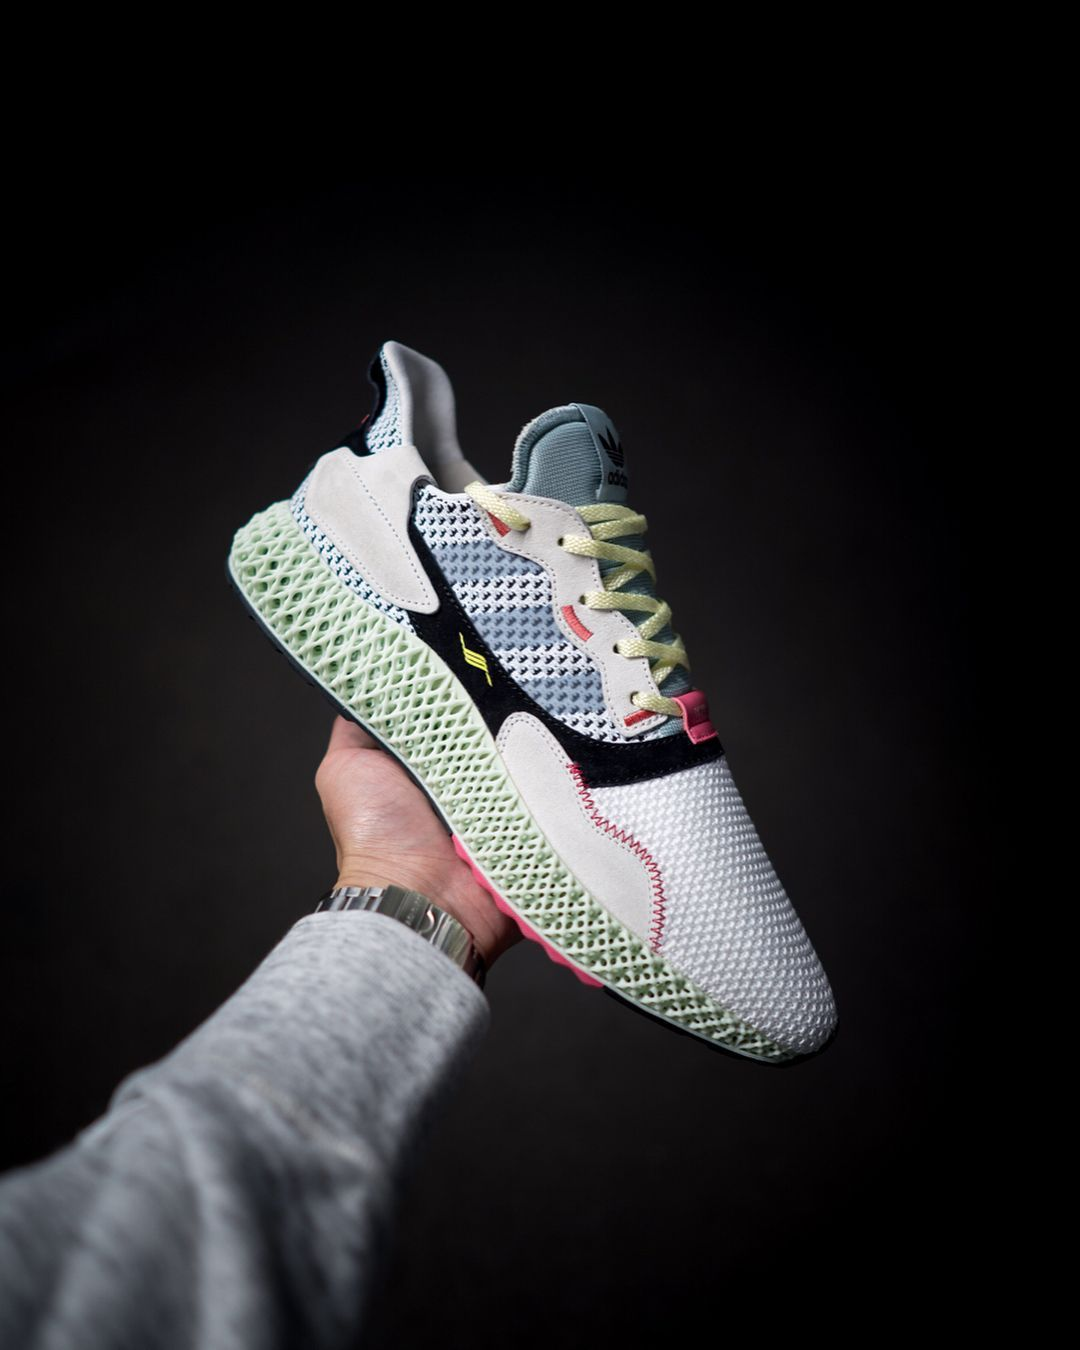 5e62469ba3d A First Look at adidas's New ZX 4000 4D Silhouette: Cutting edge. #Sneakers